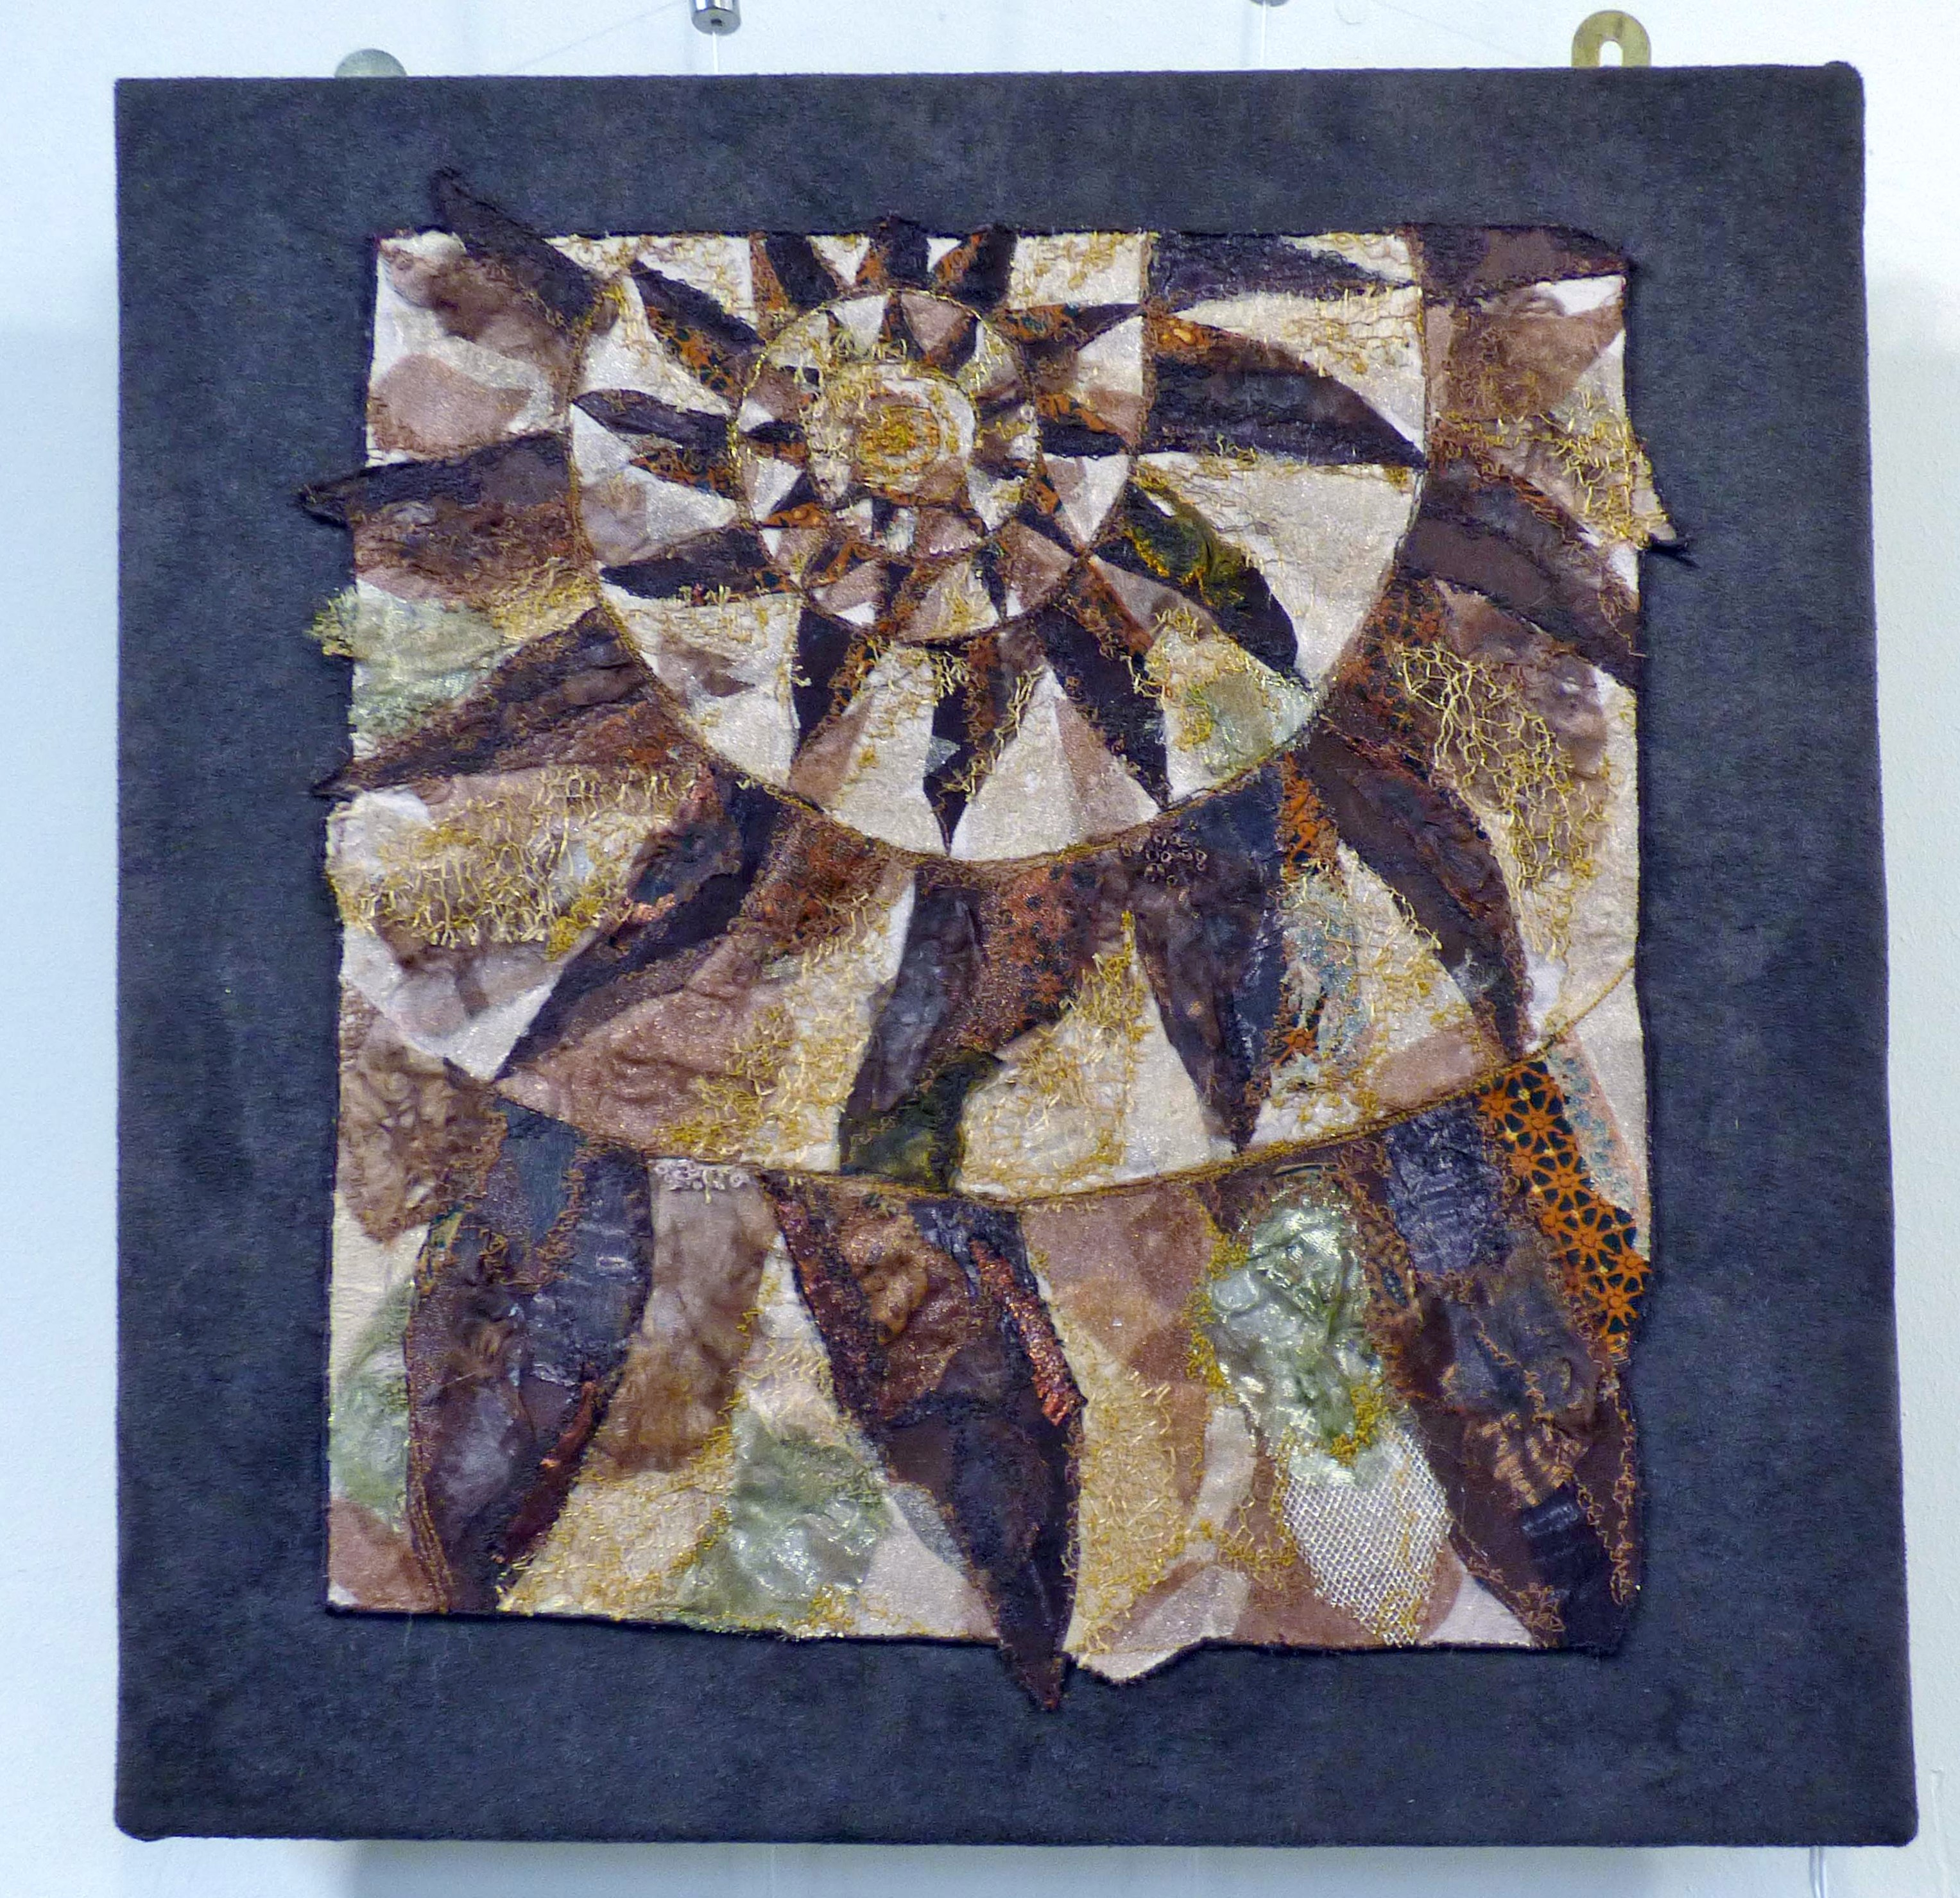 THE ETERNAL SPIRAL-THE AMMONITE 1 by Nicky Robertson, Natural Progression Textile Group, Jan 2020